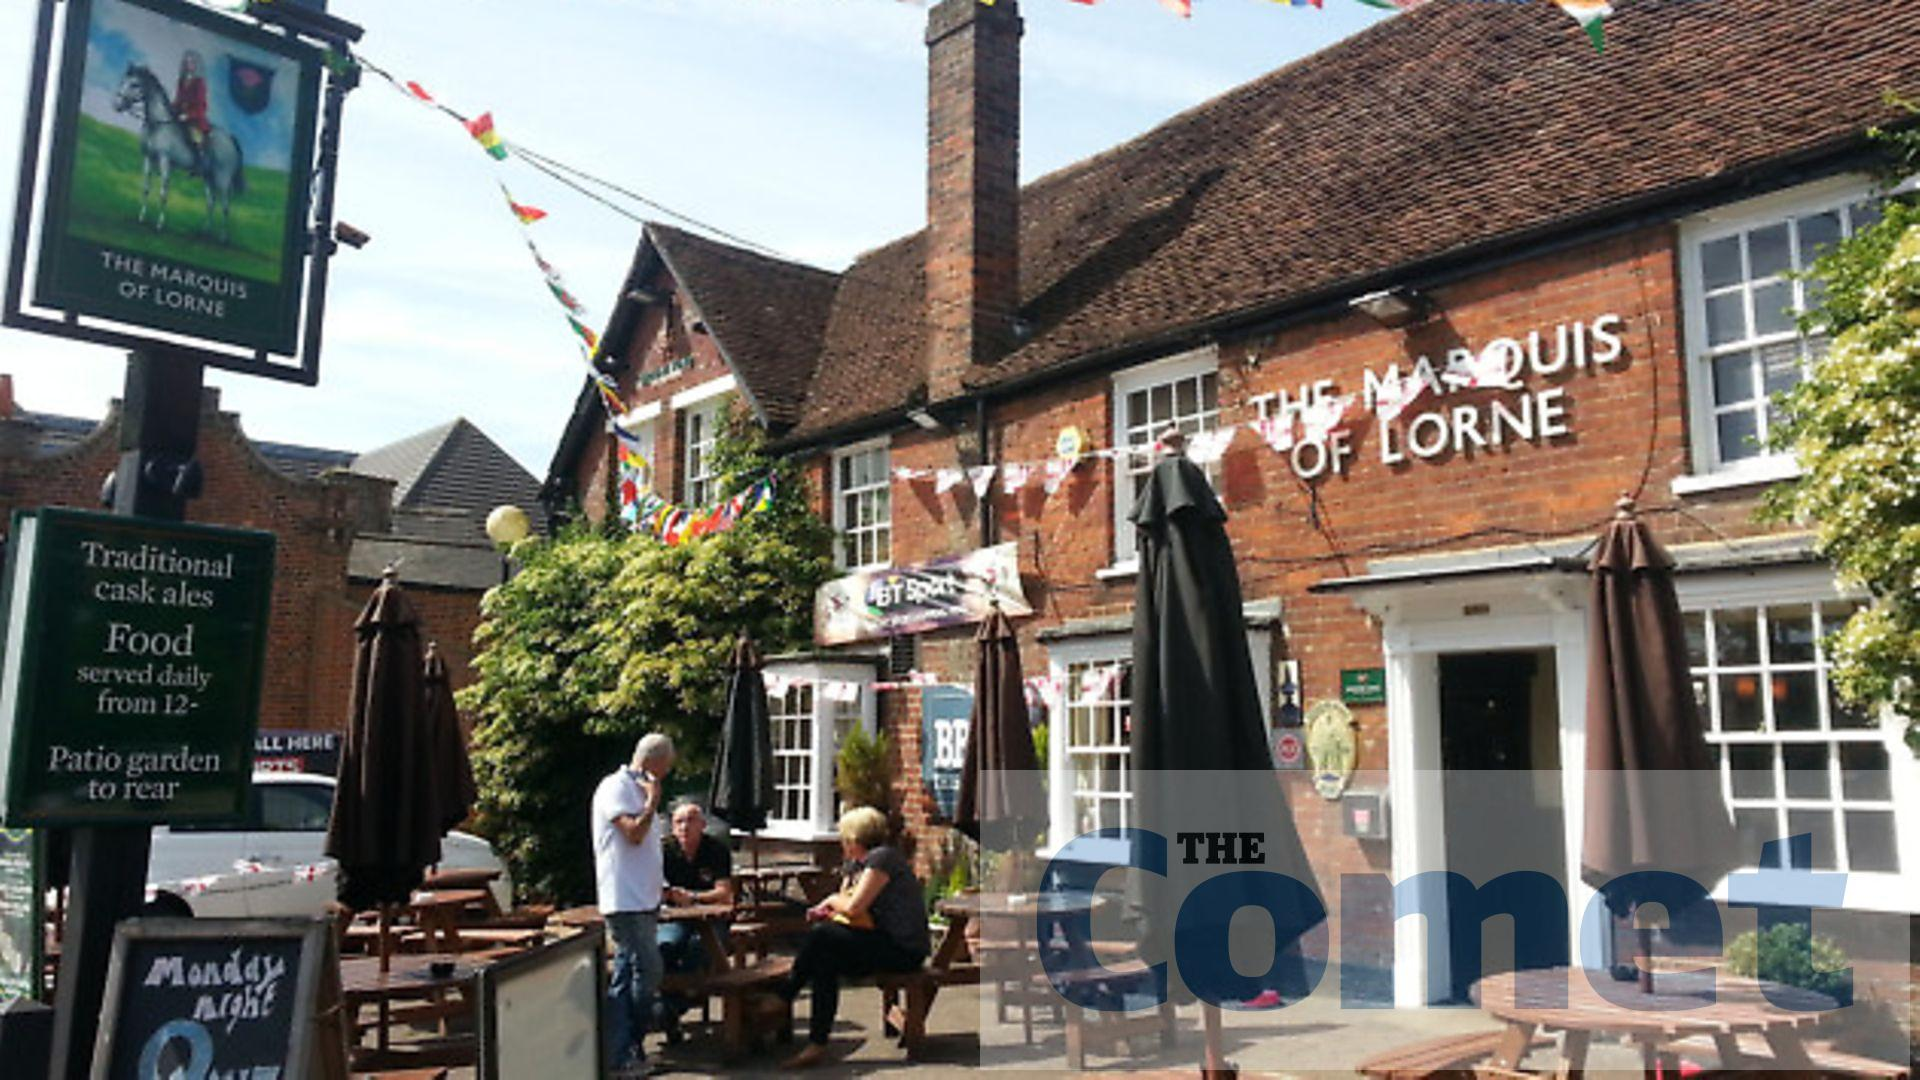 Stevenage Pub Withdraws From Hosting Edl Members Before March The Comet